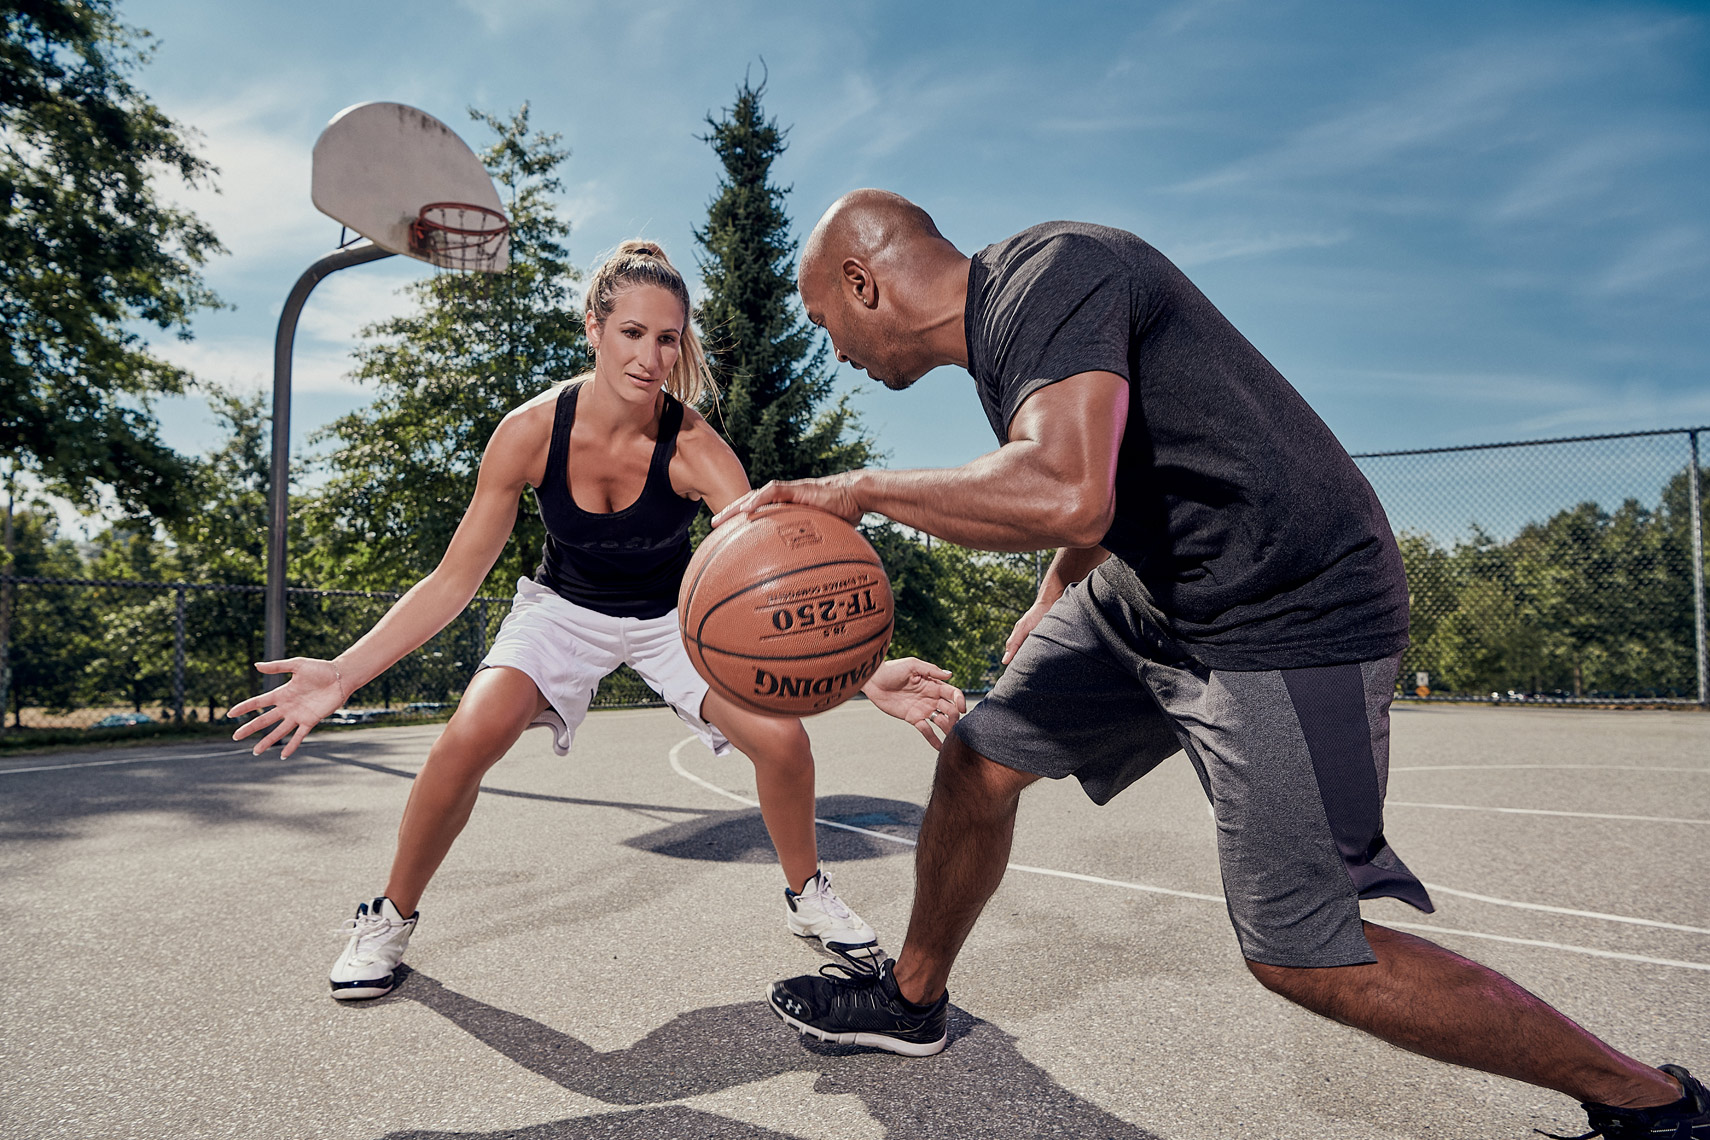 2017-Vancouver-SportsandFitness-Photographer-ErichSaide-Advertising-Reflex-Supplements-Basketball-Lifestyle